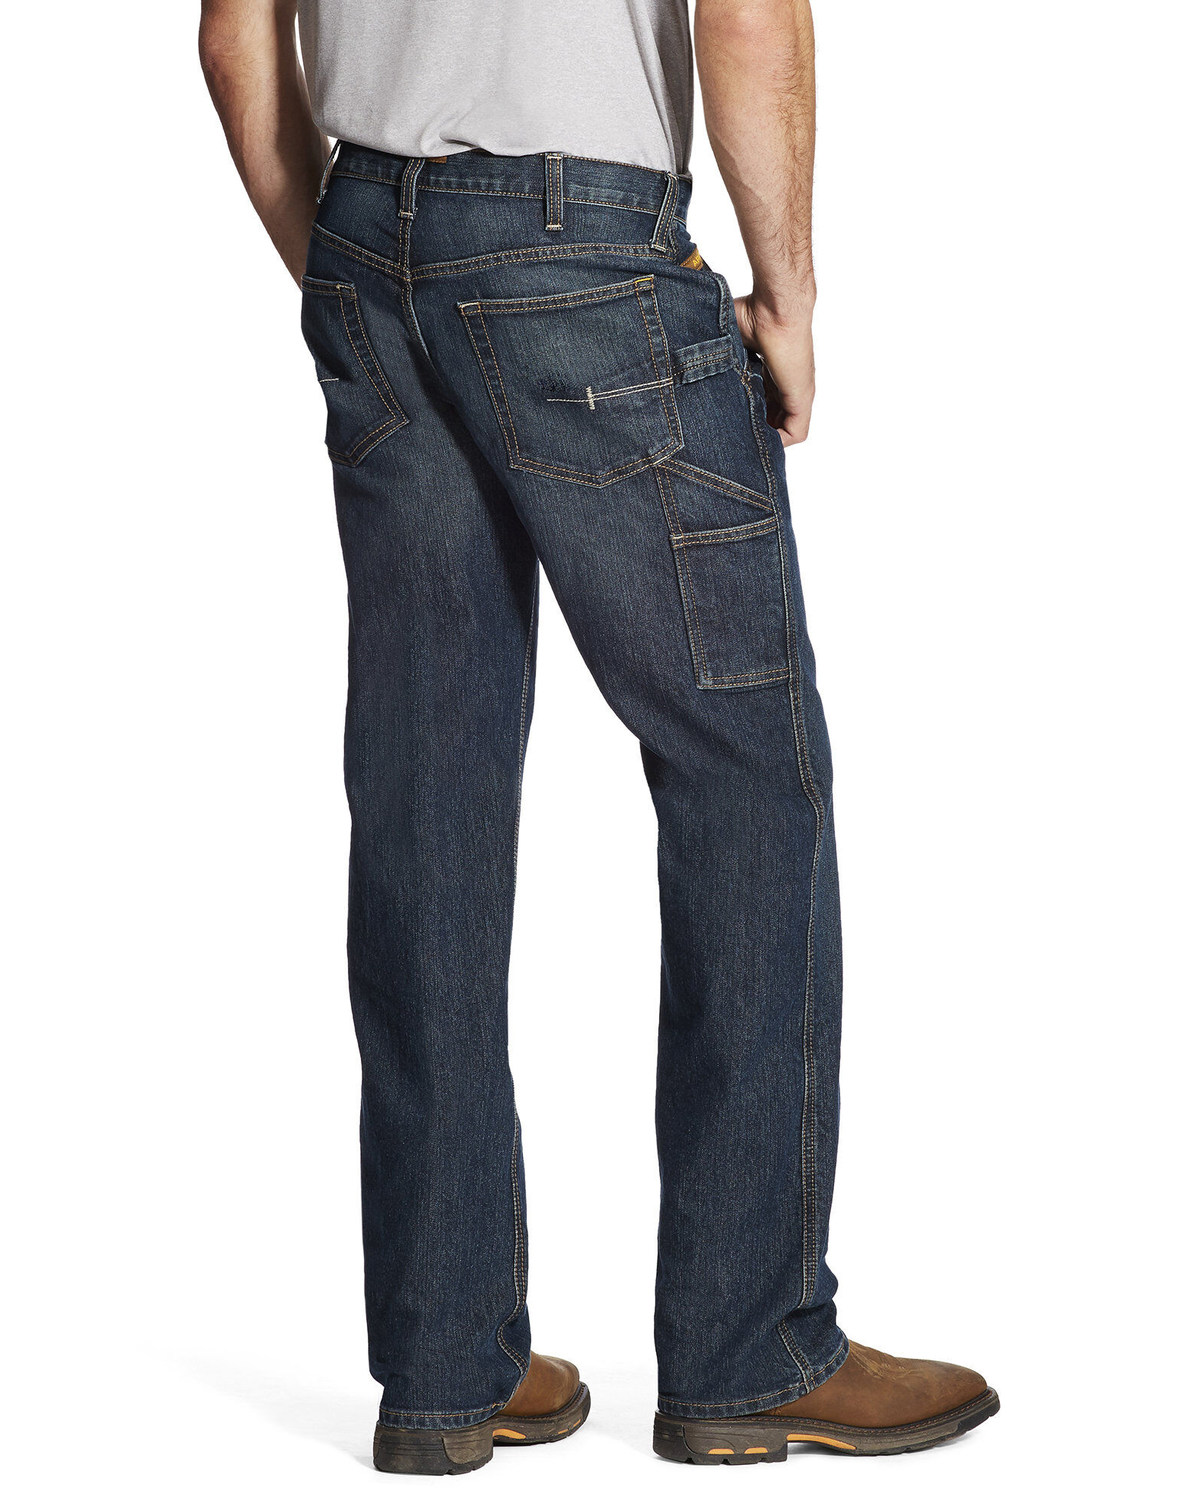 c9d2ad7b5657 Ariat Men s M4 Workhorse Relaxed Fit Carpenter Jeans